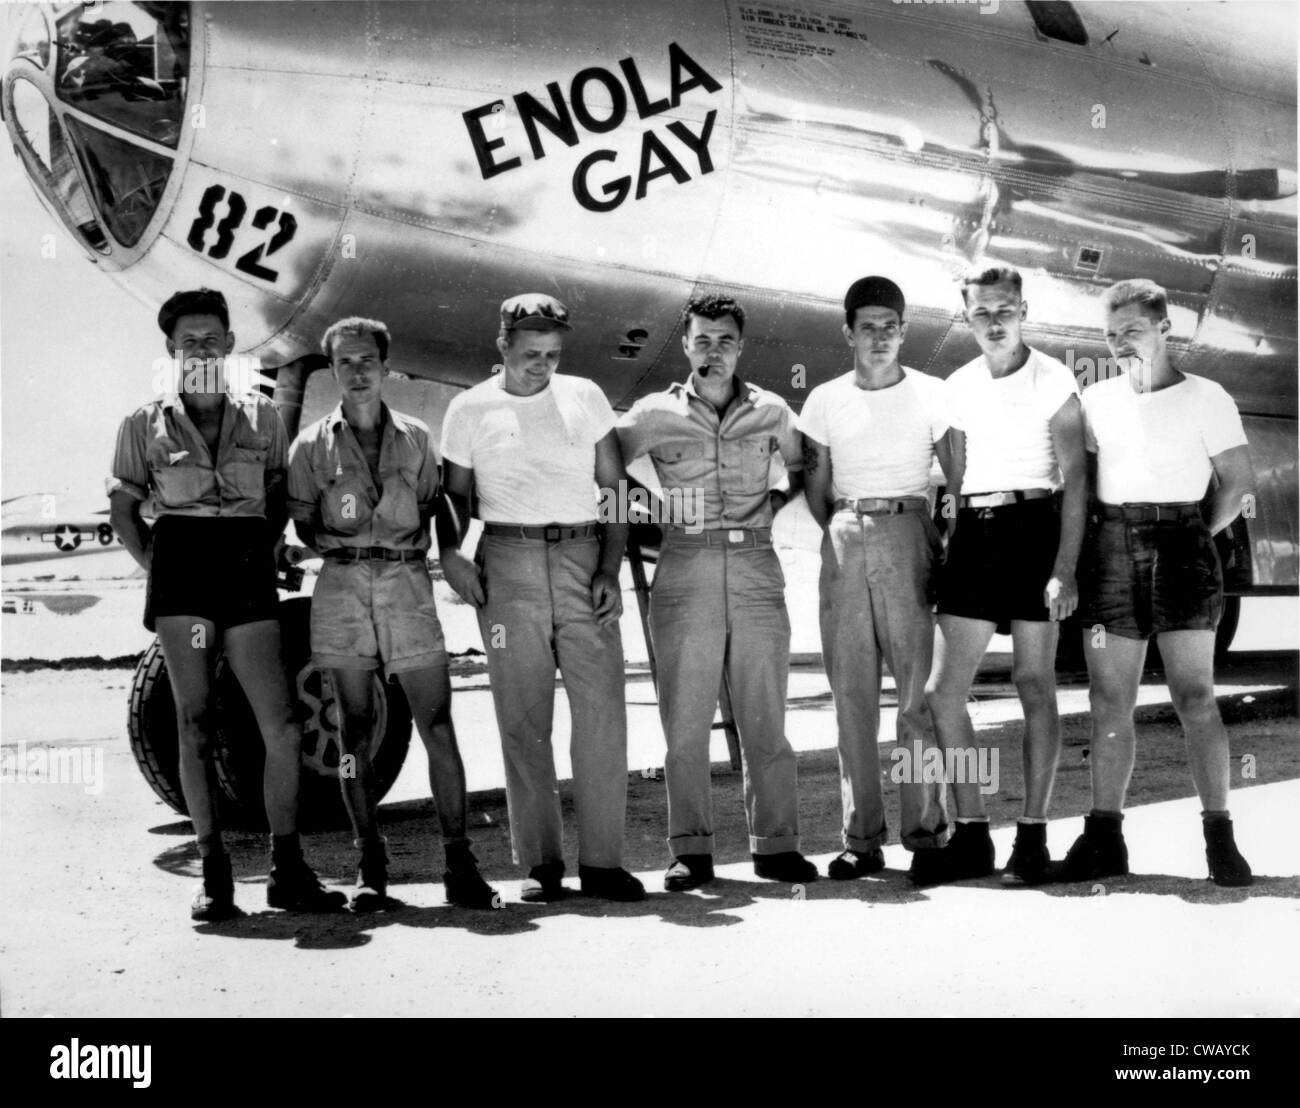 Enola Gay. The ground crew of the B-29 'Enola Gay' which atom-bombed Hiroshima, Japan. Col. Paul W. Tibbets, - Stock Image